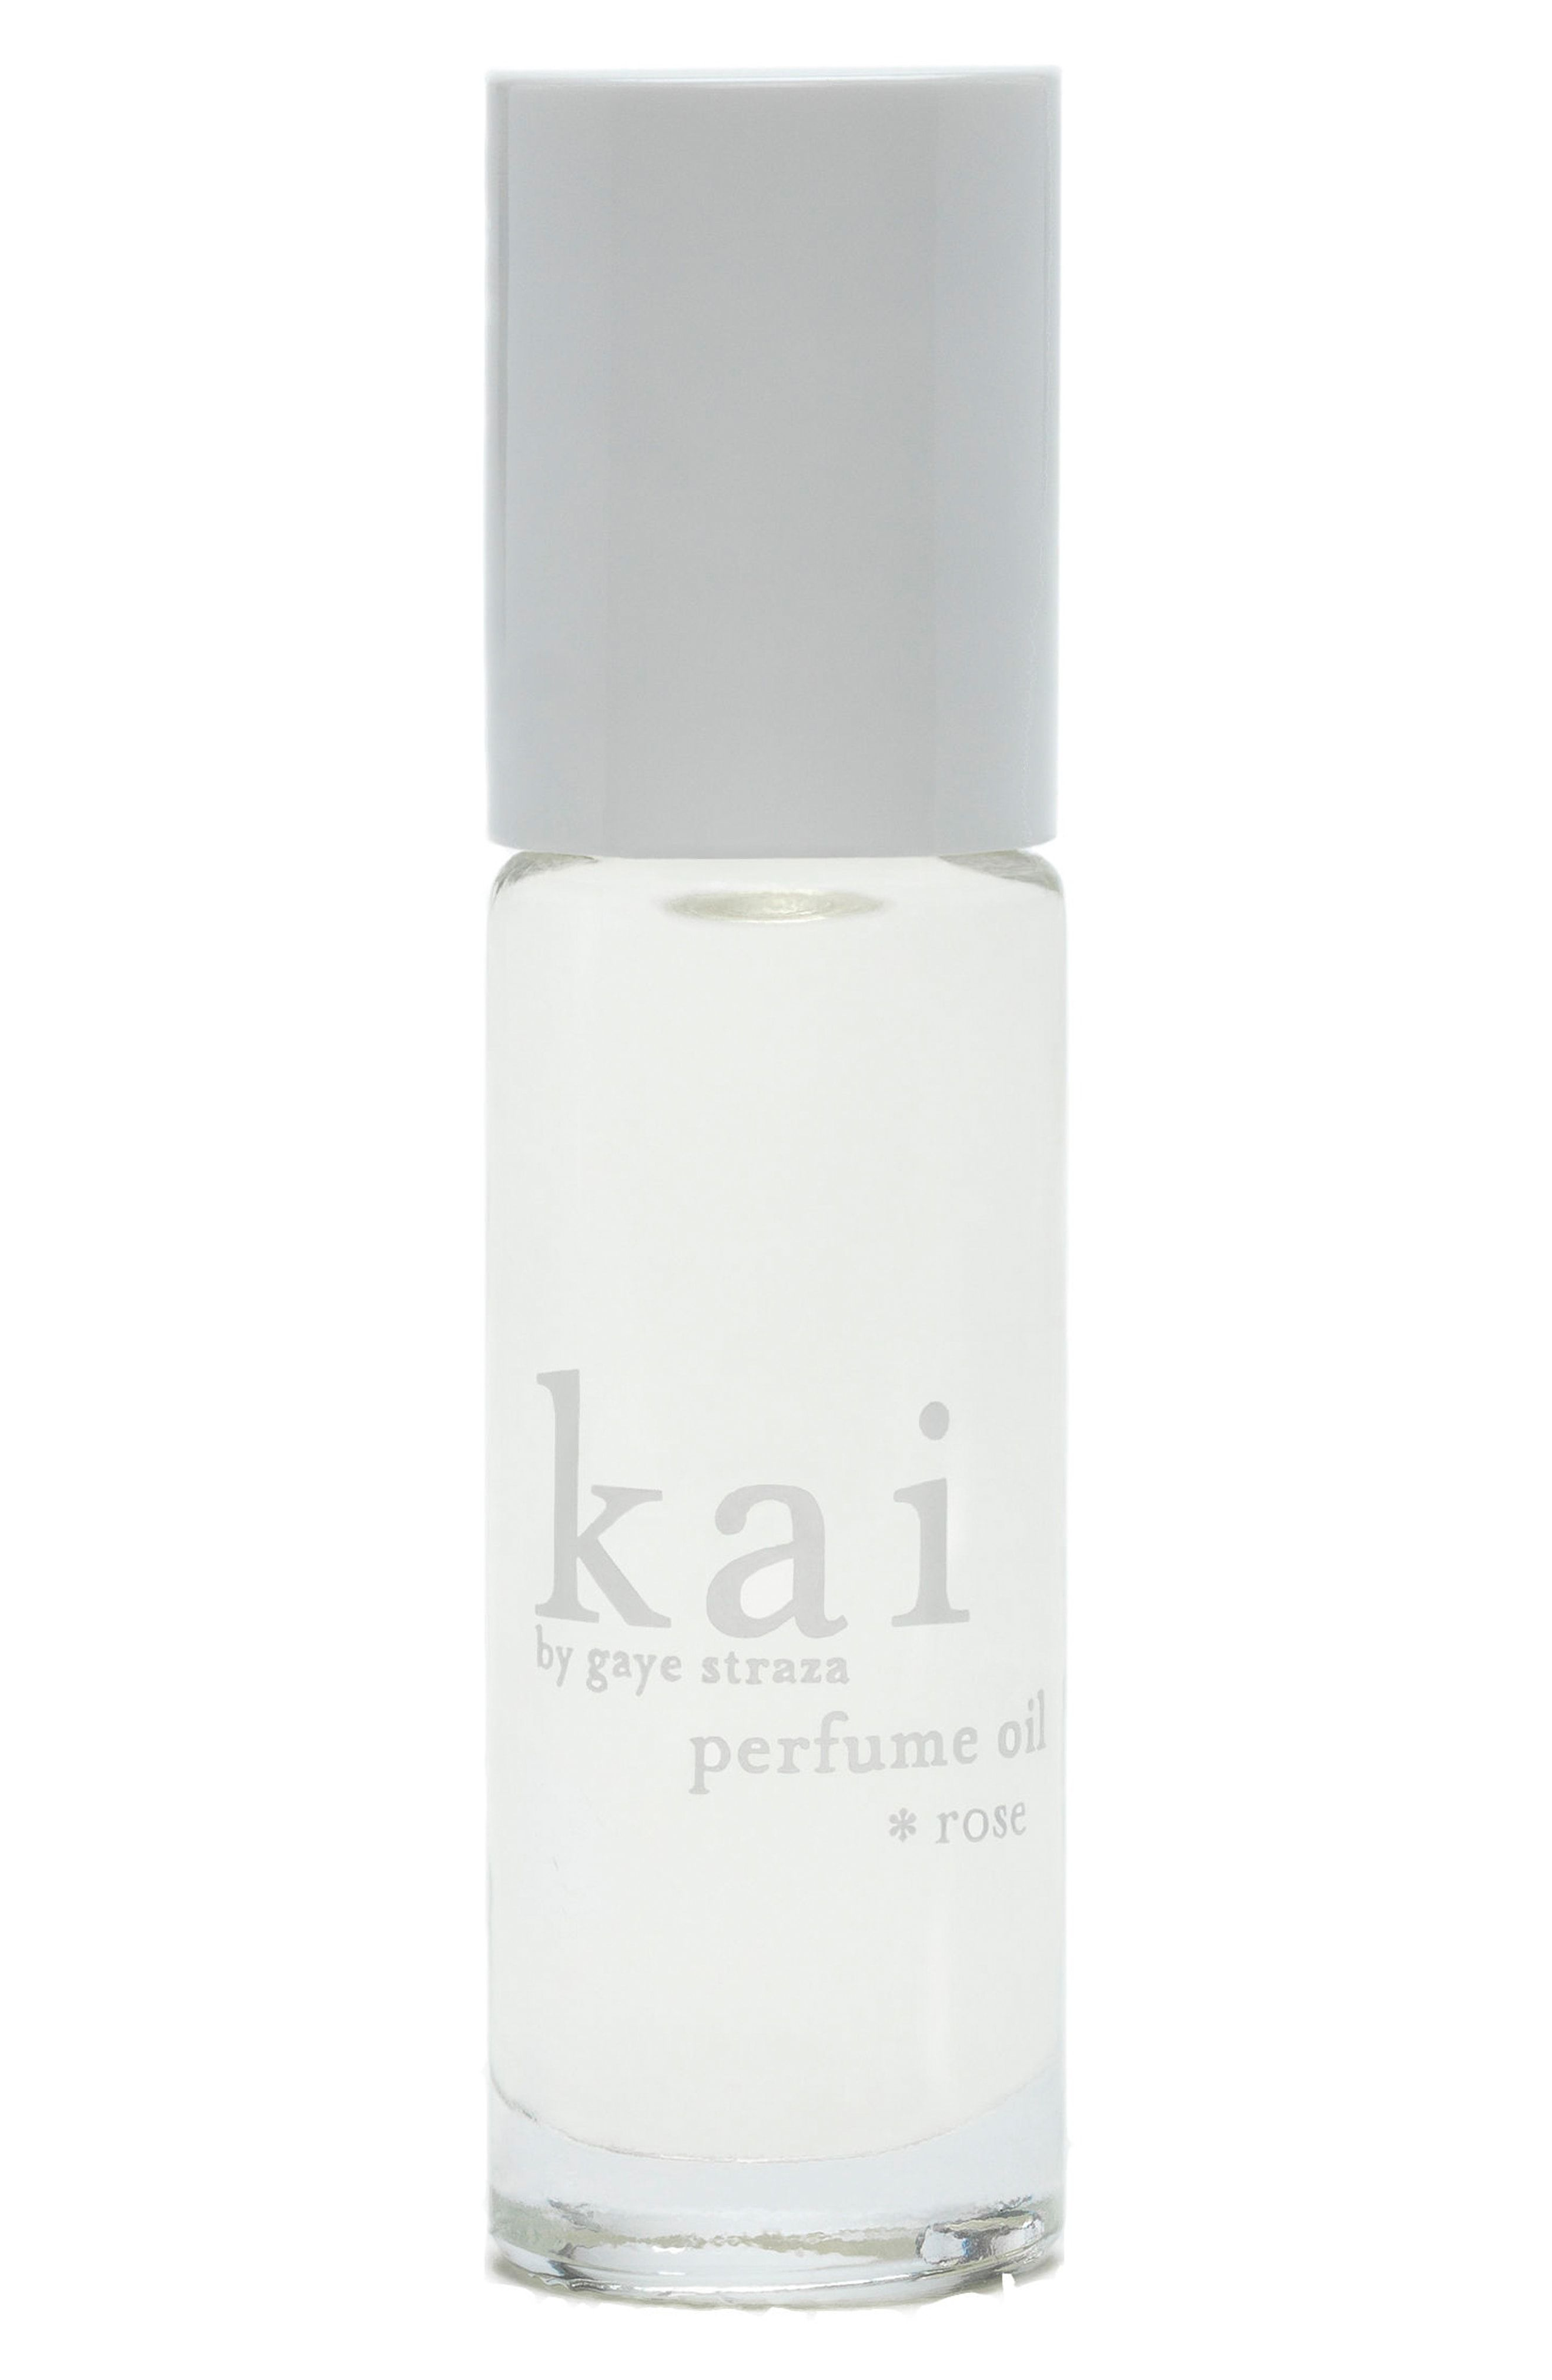 "Kai Rose Perfume Oil nordstrom.com $50.00 SHOP NOW What they say: "" A light and intoxicating scent of gardenia wrapped in white exotics layered with rose absolute."" What we say: The most complimented and asked-after scent I own."